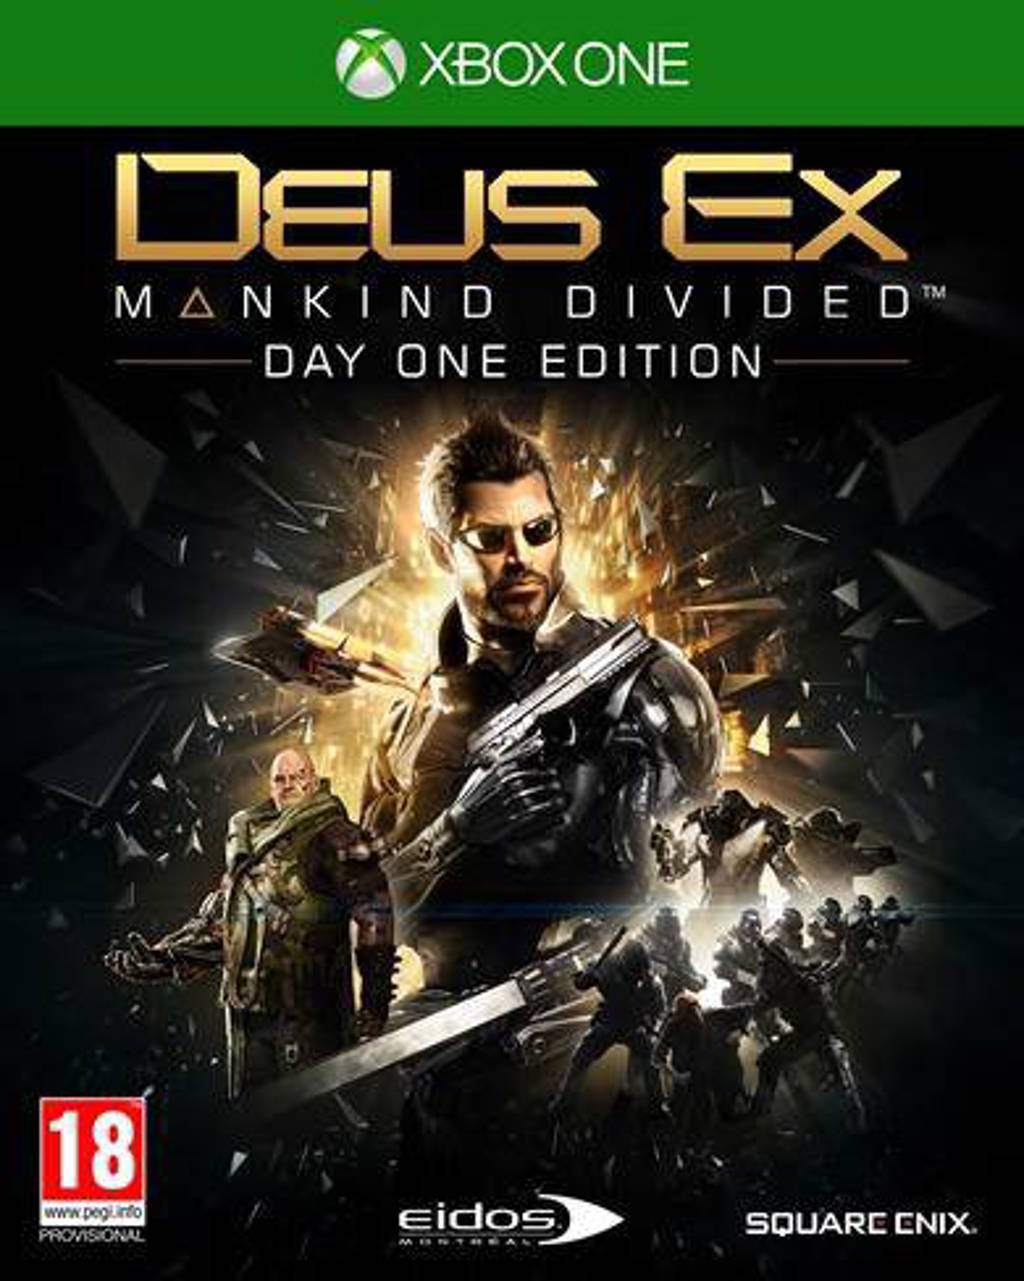 Deus ex - Mankind divided (Day one edition) (Xbox One)